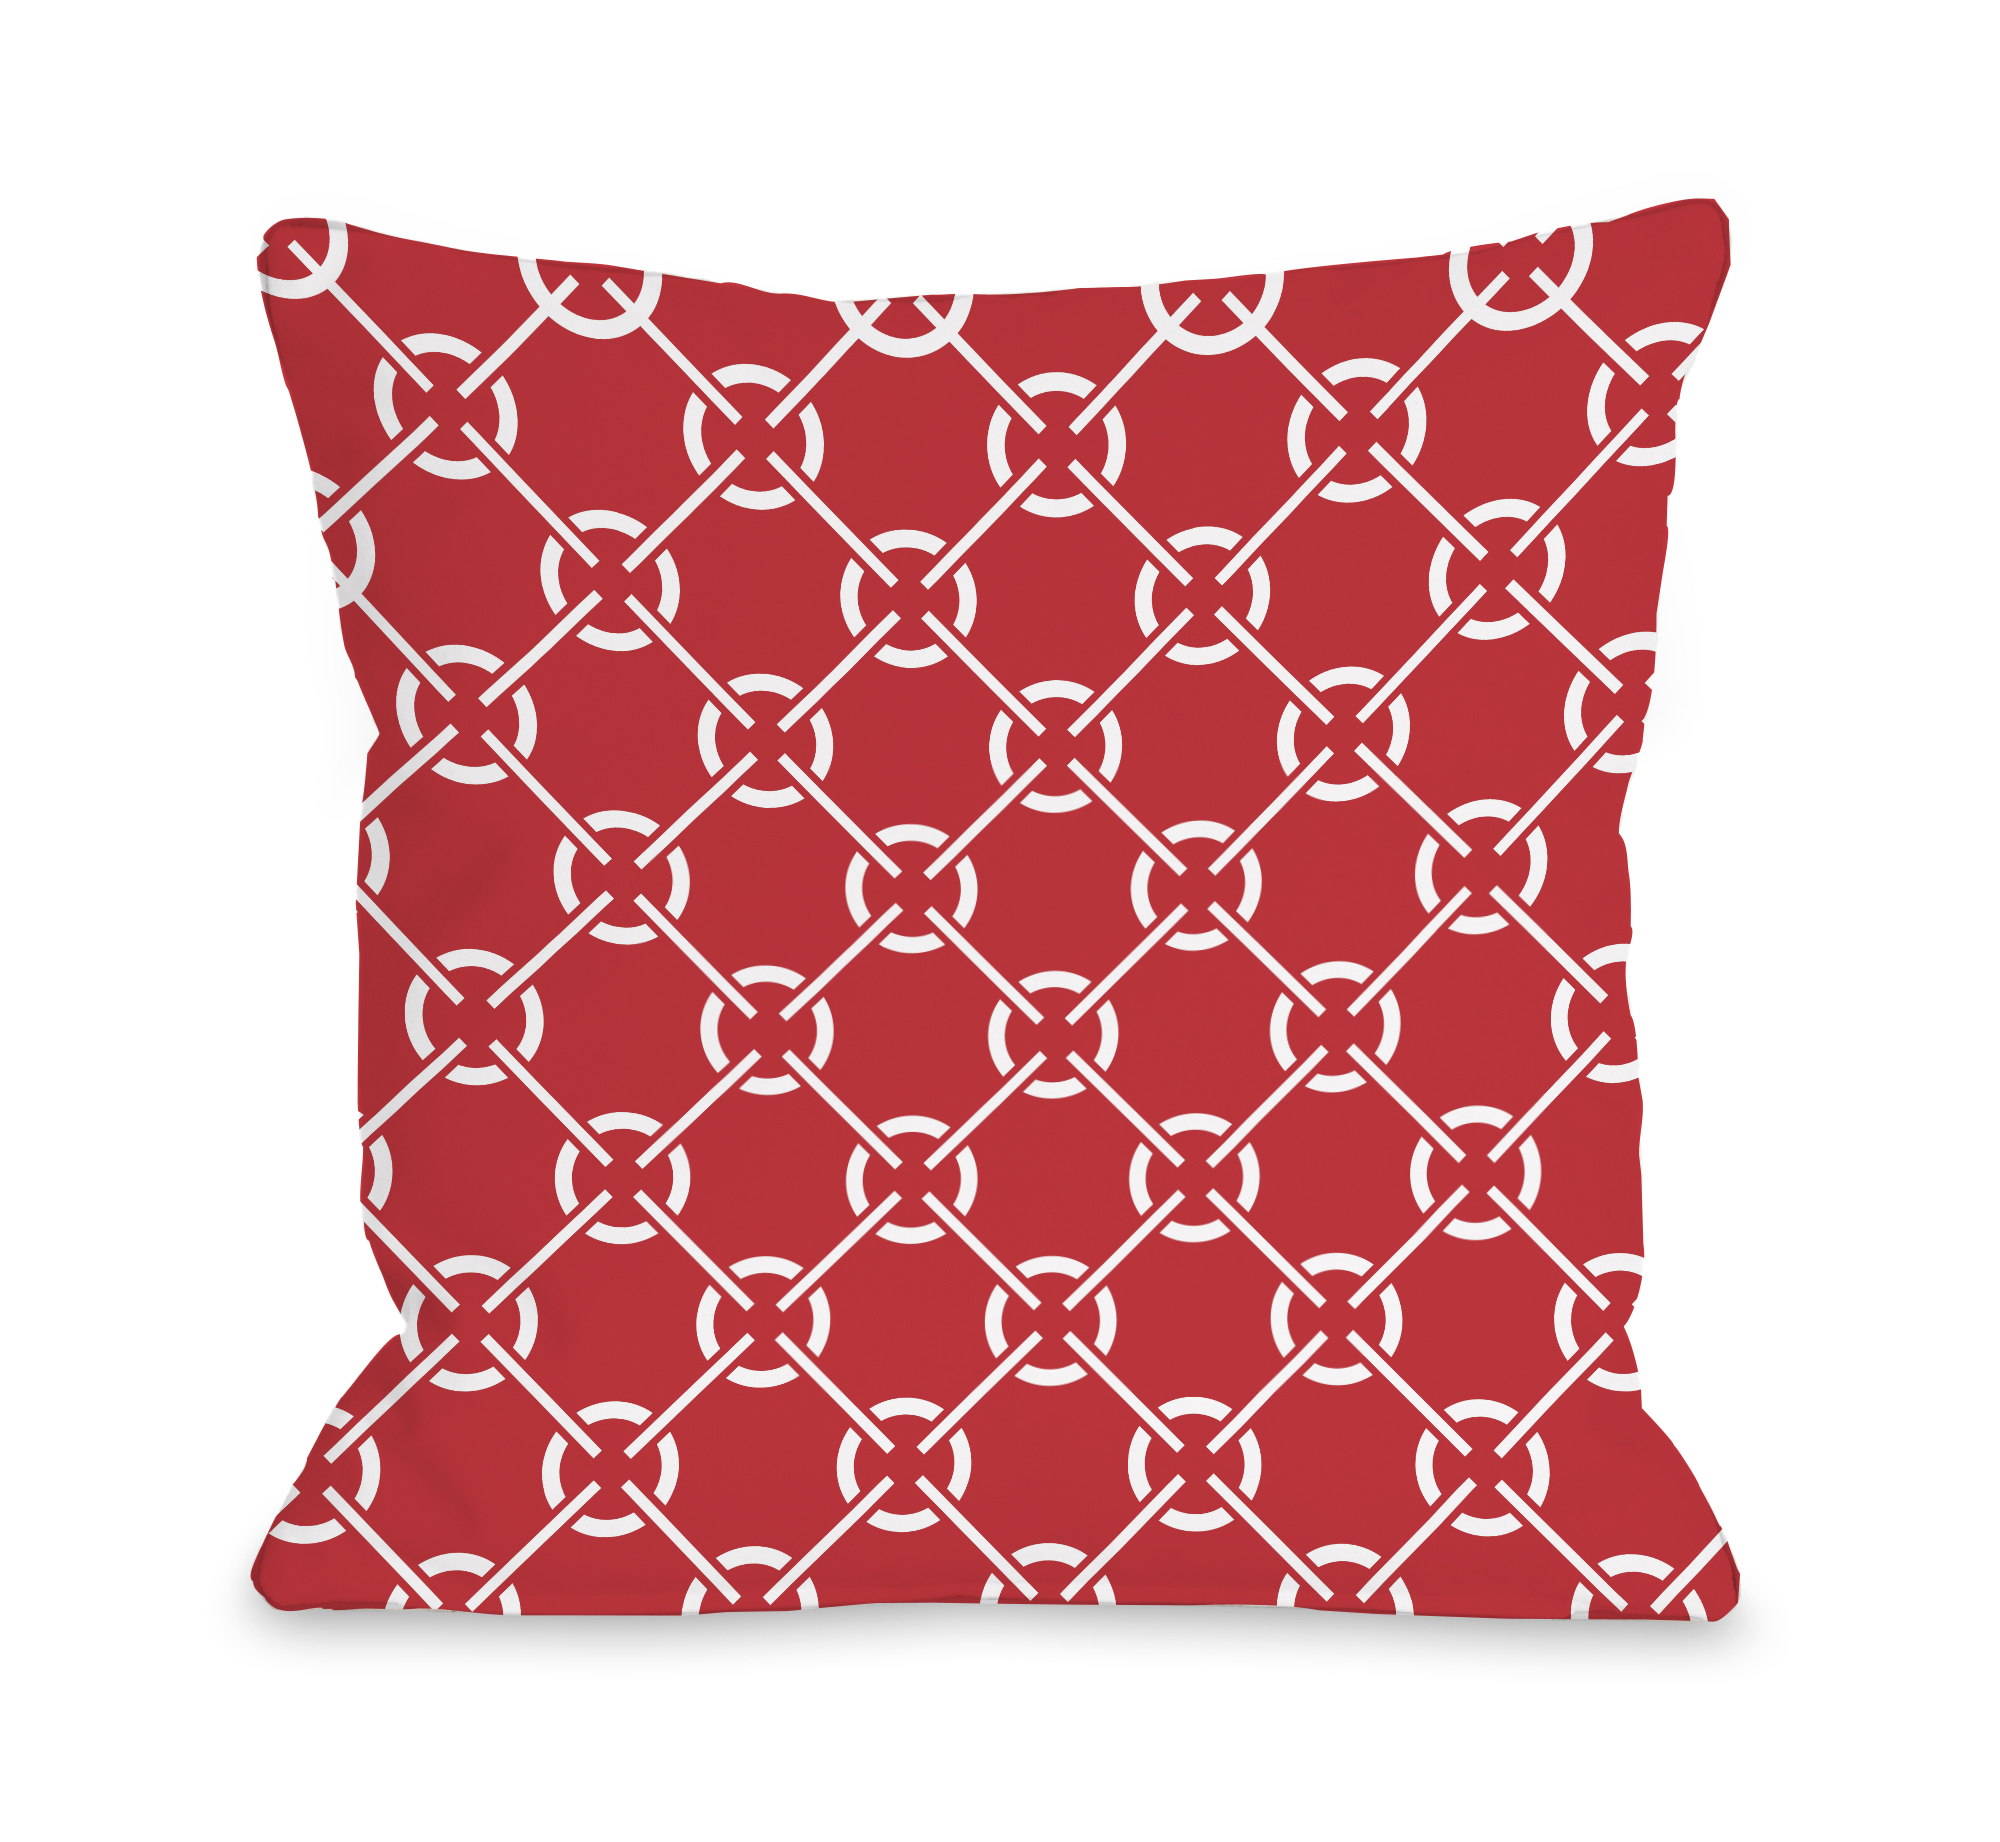 Cecile's Circles - Poppy Red 18x18 Pillow by OBC